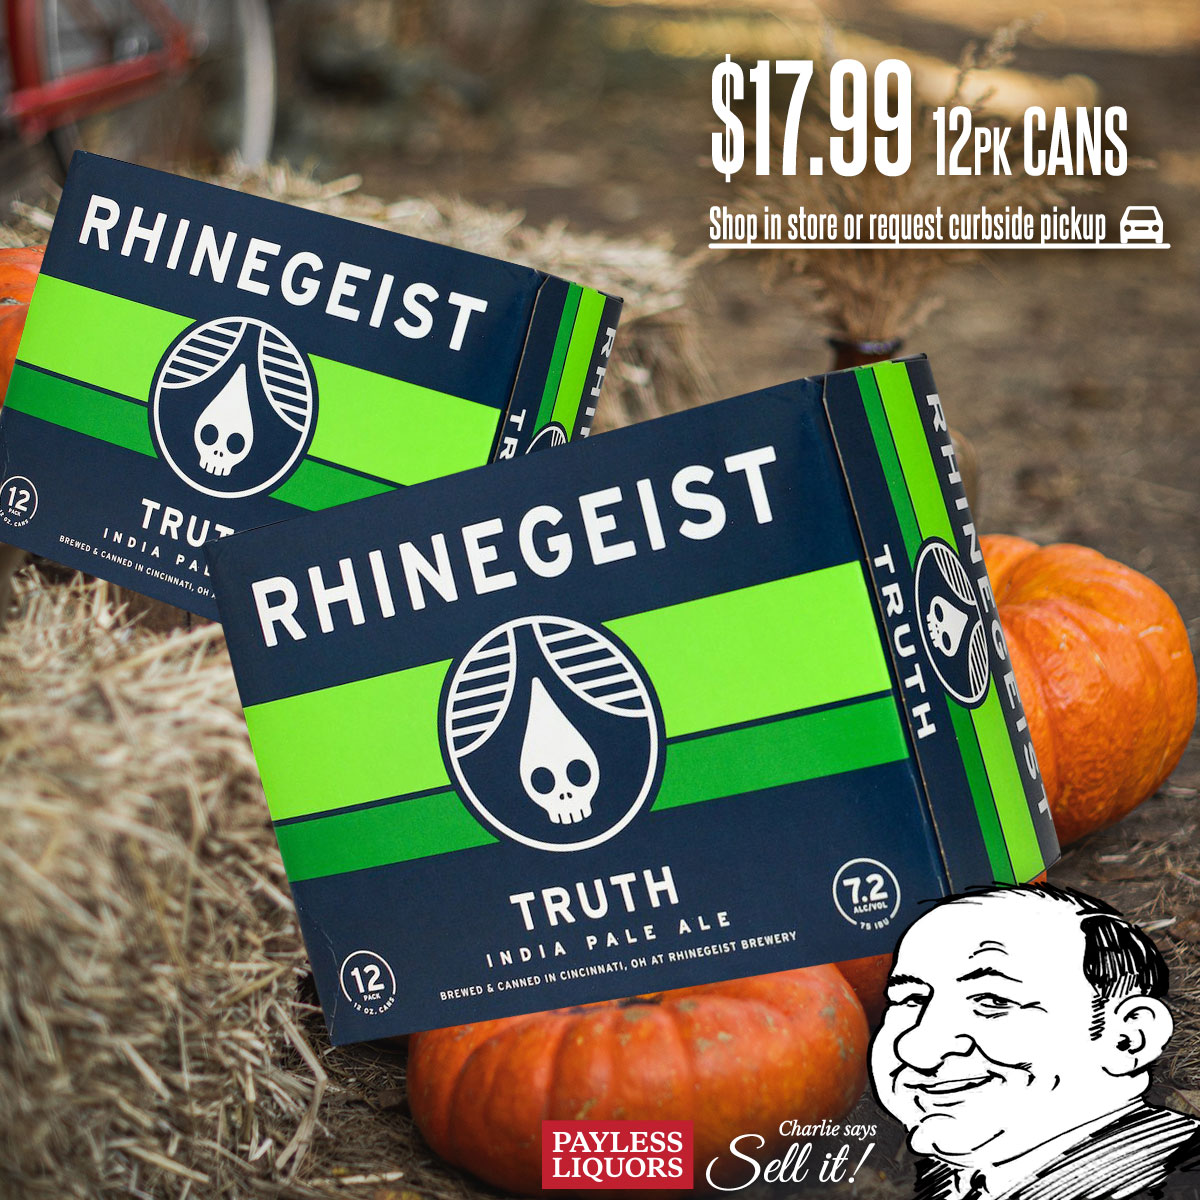 Rhinegeist Truth IPA 12 Pack Cans